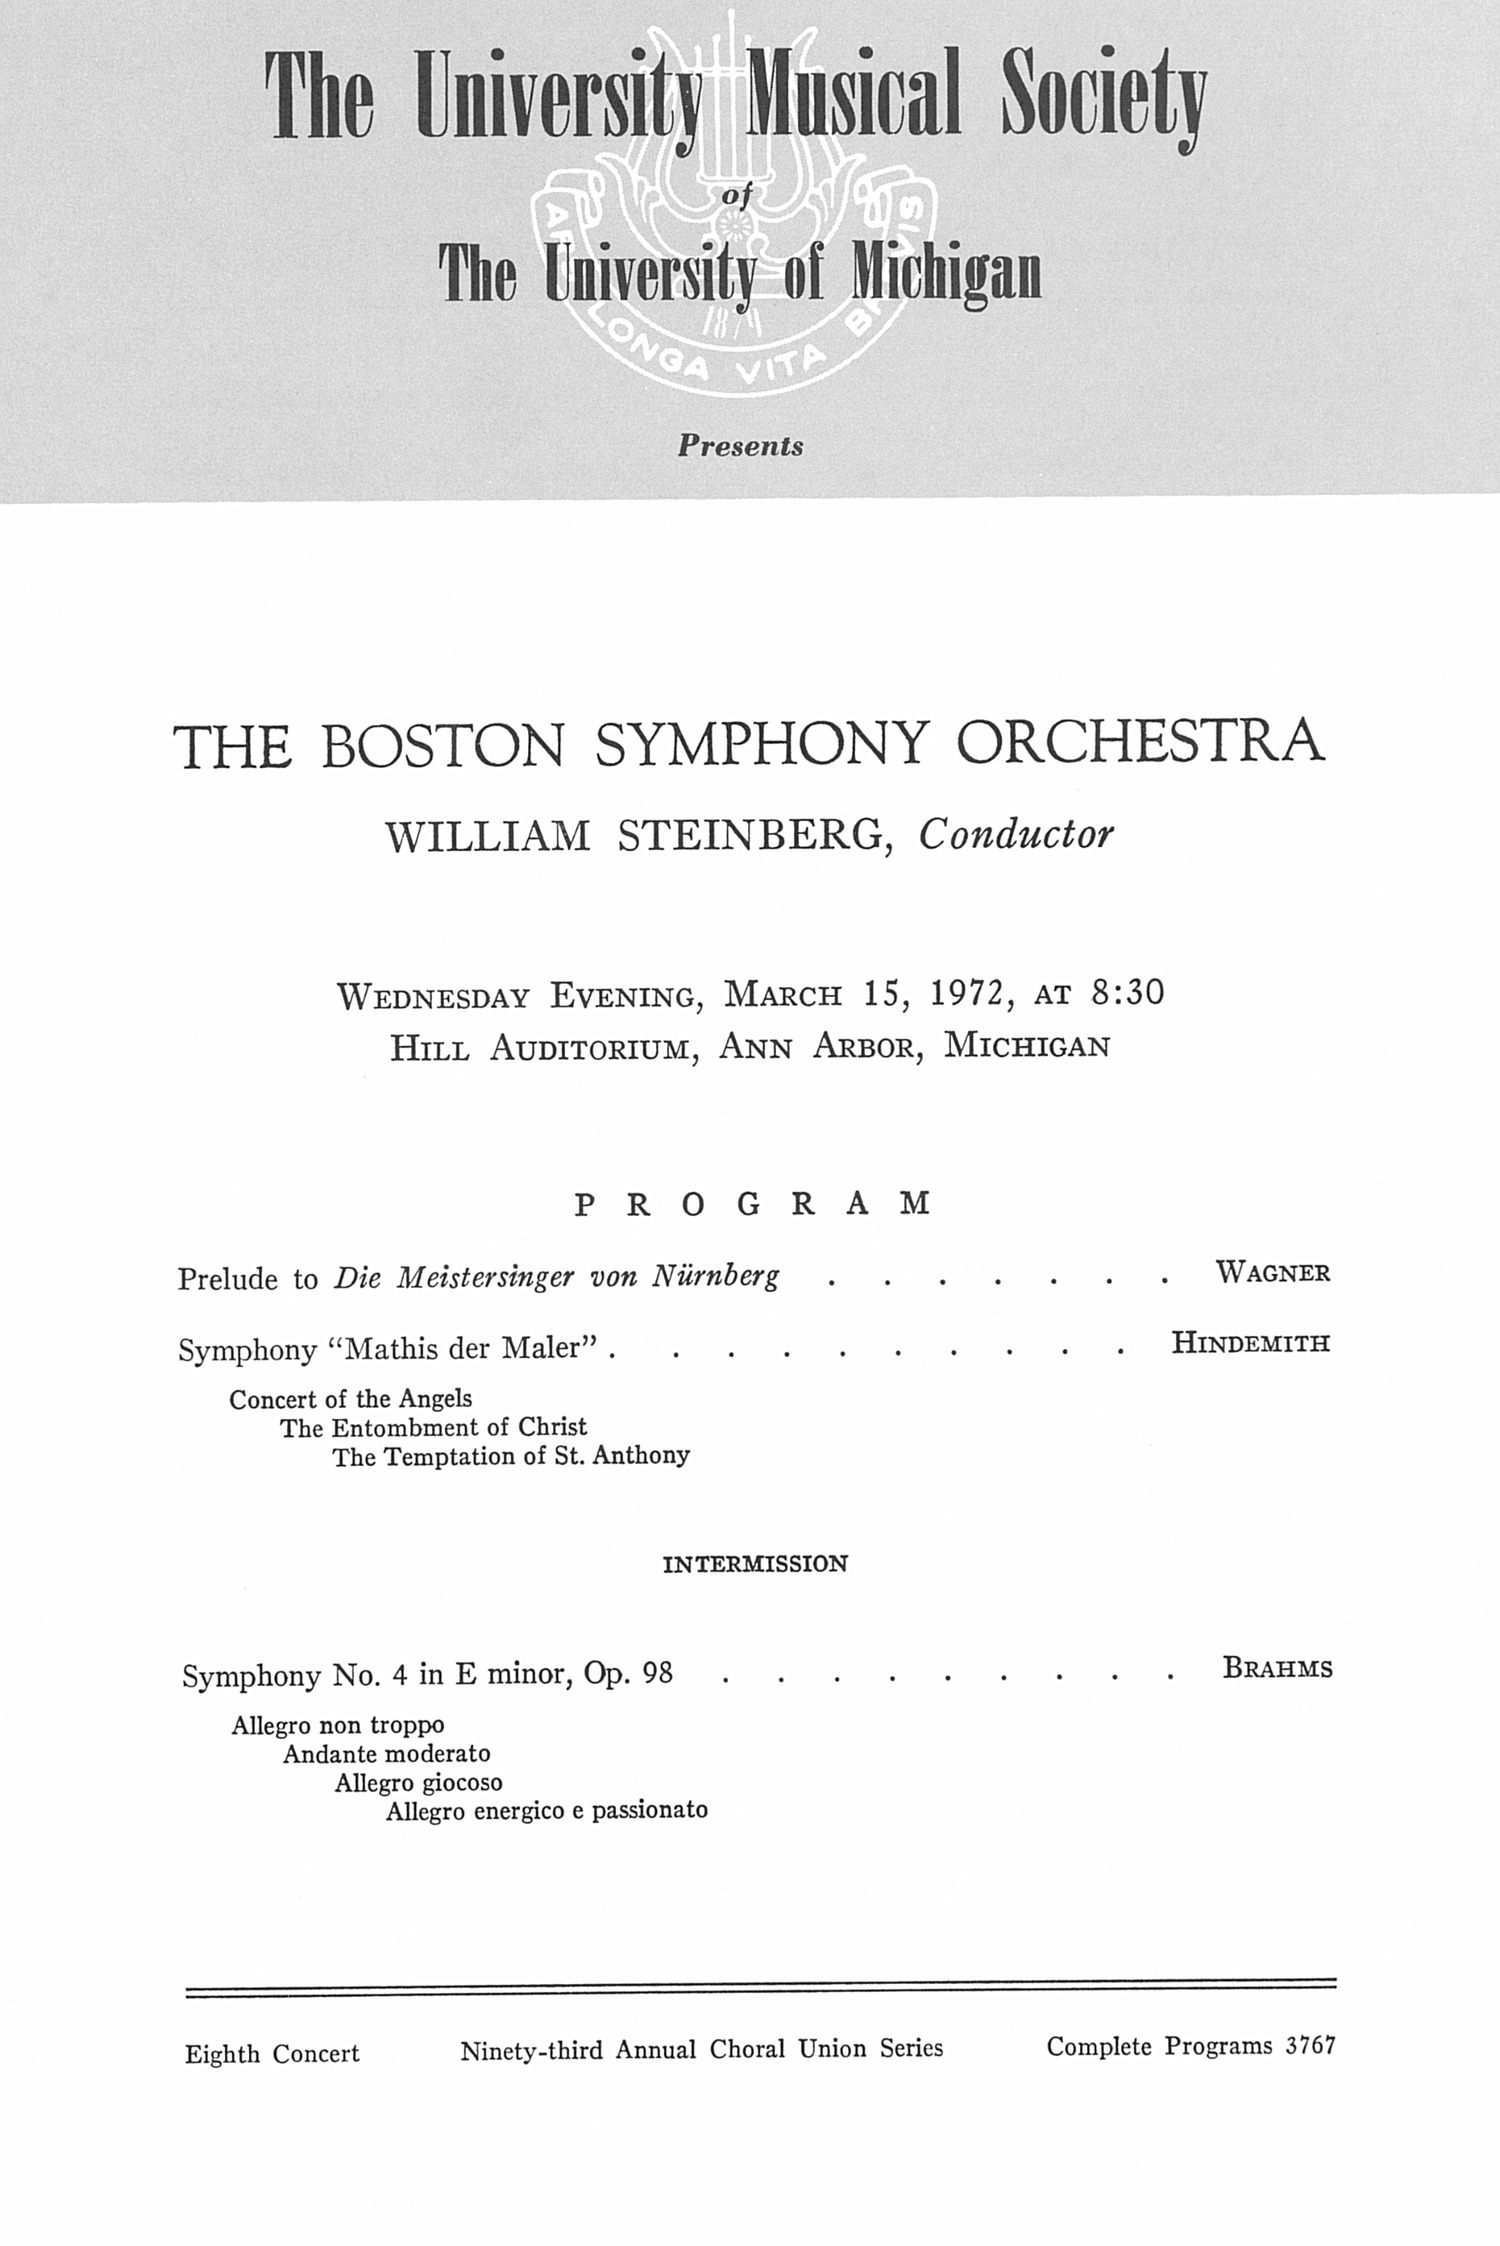 UMS Concert Program, March 15, 1972: The Boston Symphony Orchestra --  image